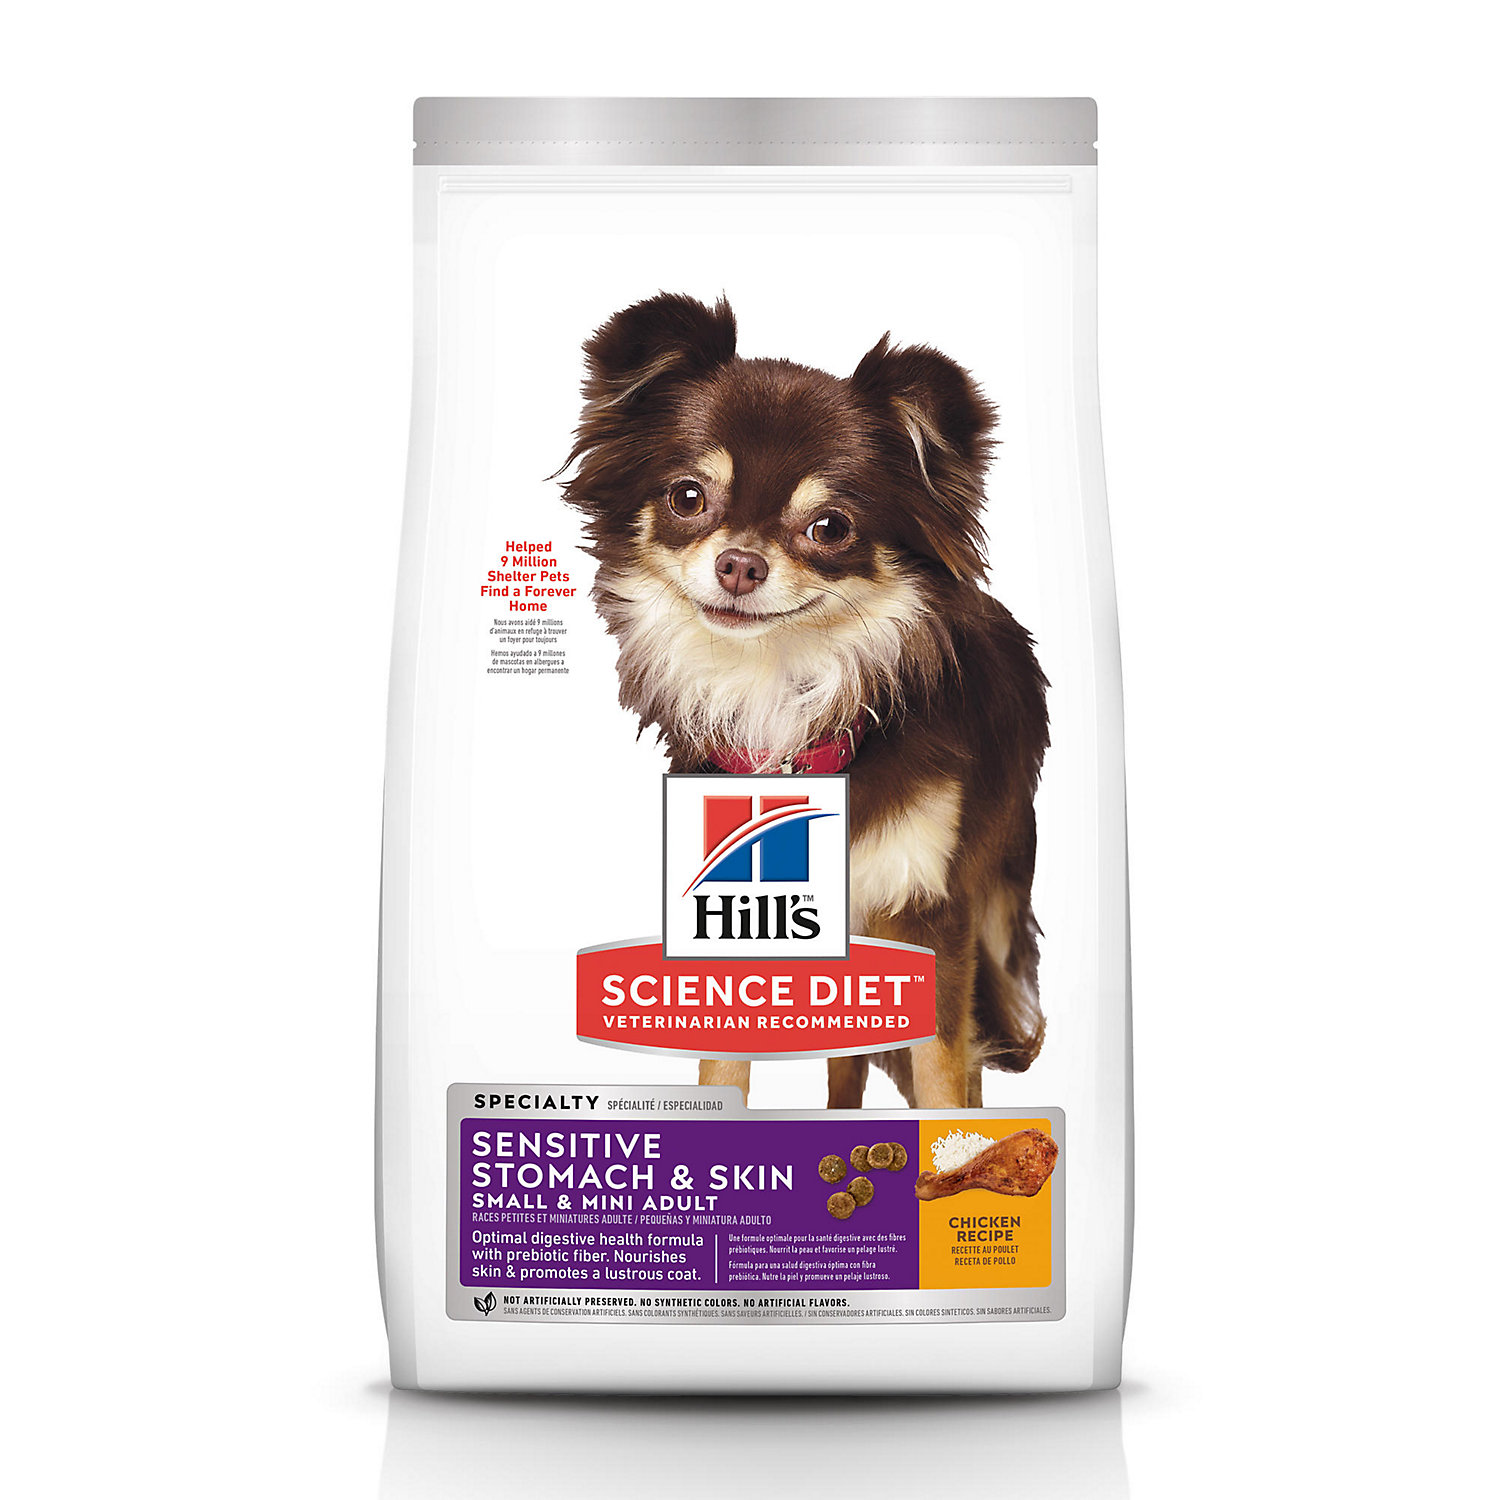 Hill's Science Diet Adult Sensitive Stomach & Skin Small & Mini Chicken Recipe Dry Dog Food